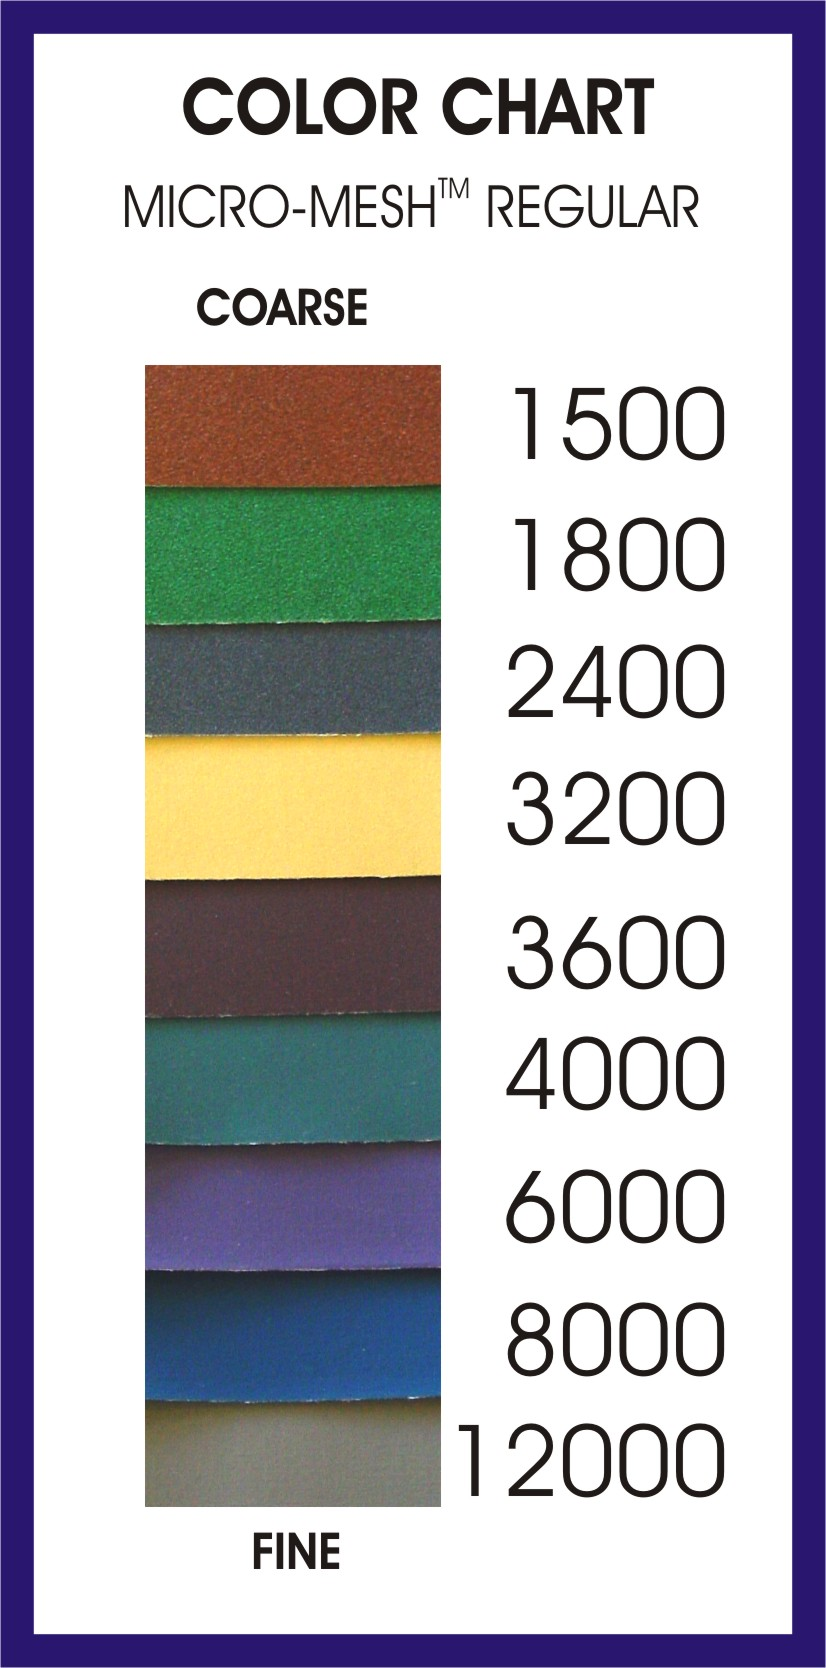 Grit conversion micro surface finishing products inc colorconvchart100907g nvjuhfo Gallery